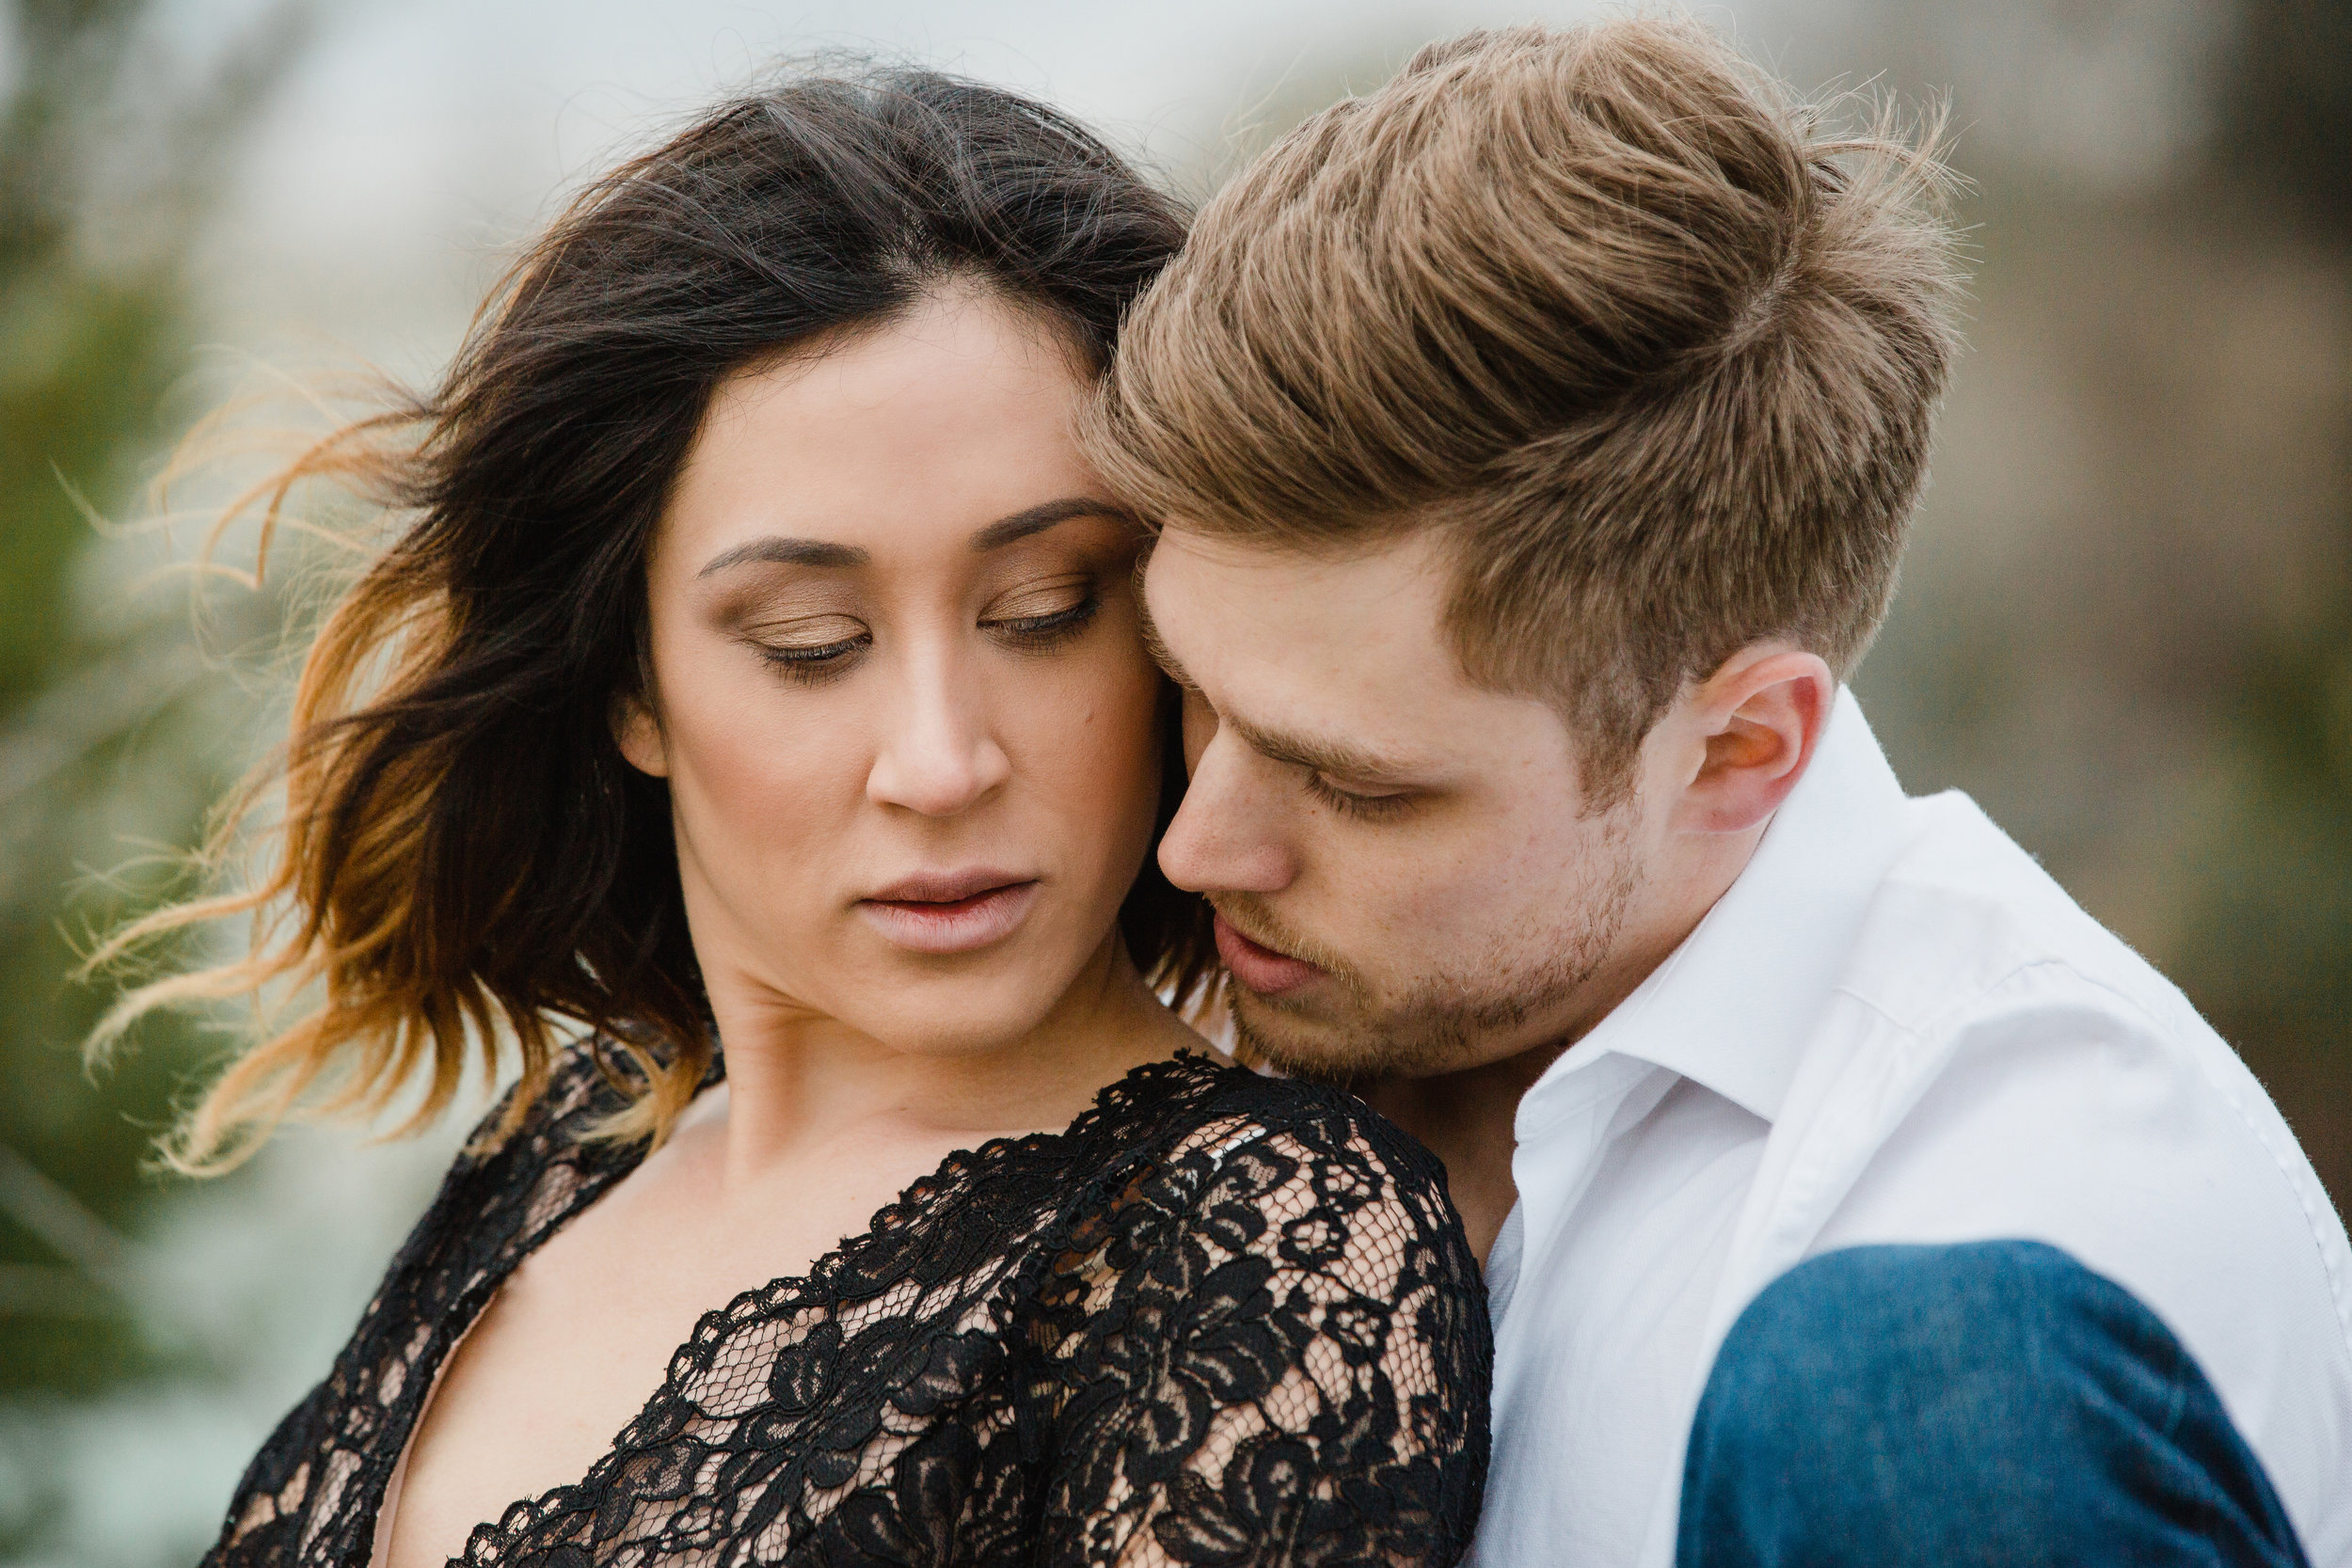 best wedding photography, wedding photography, engagement, couples in love, windy days, beautiful sky, live life in love, adventure, dallas style, bridal style, bridal fashion, wedding party fashion, photography, dallas, plano, mckinney, dfw, texas, north texas